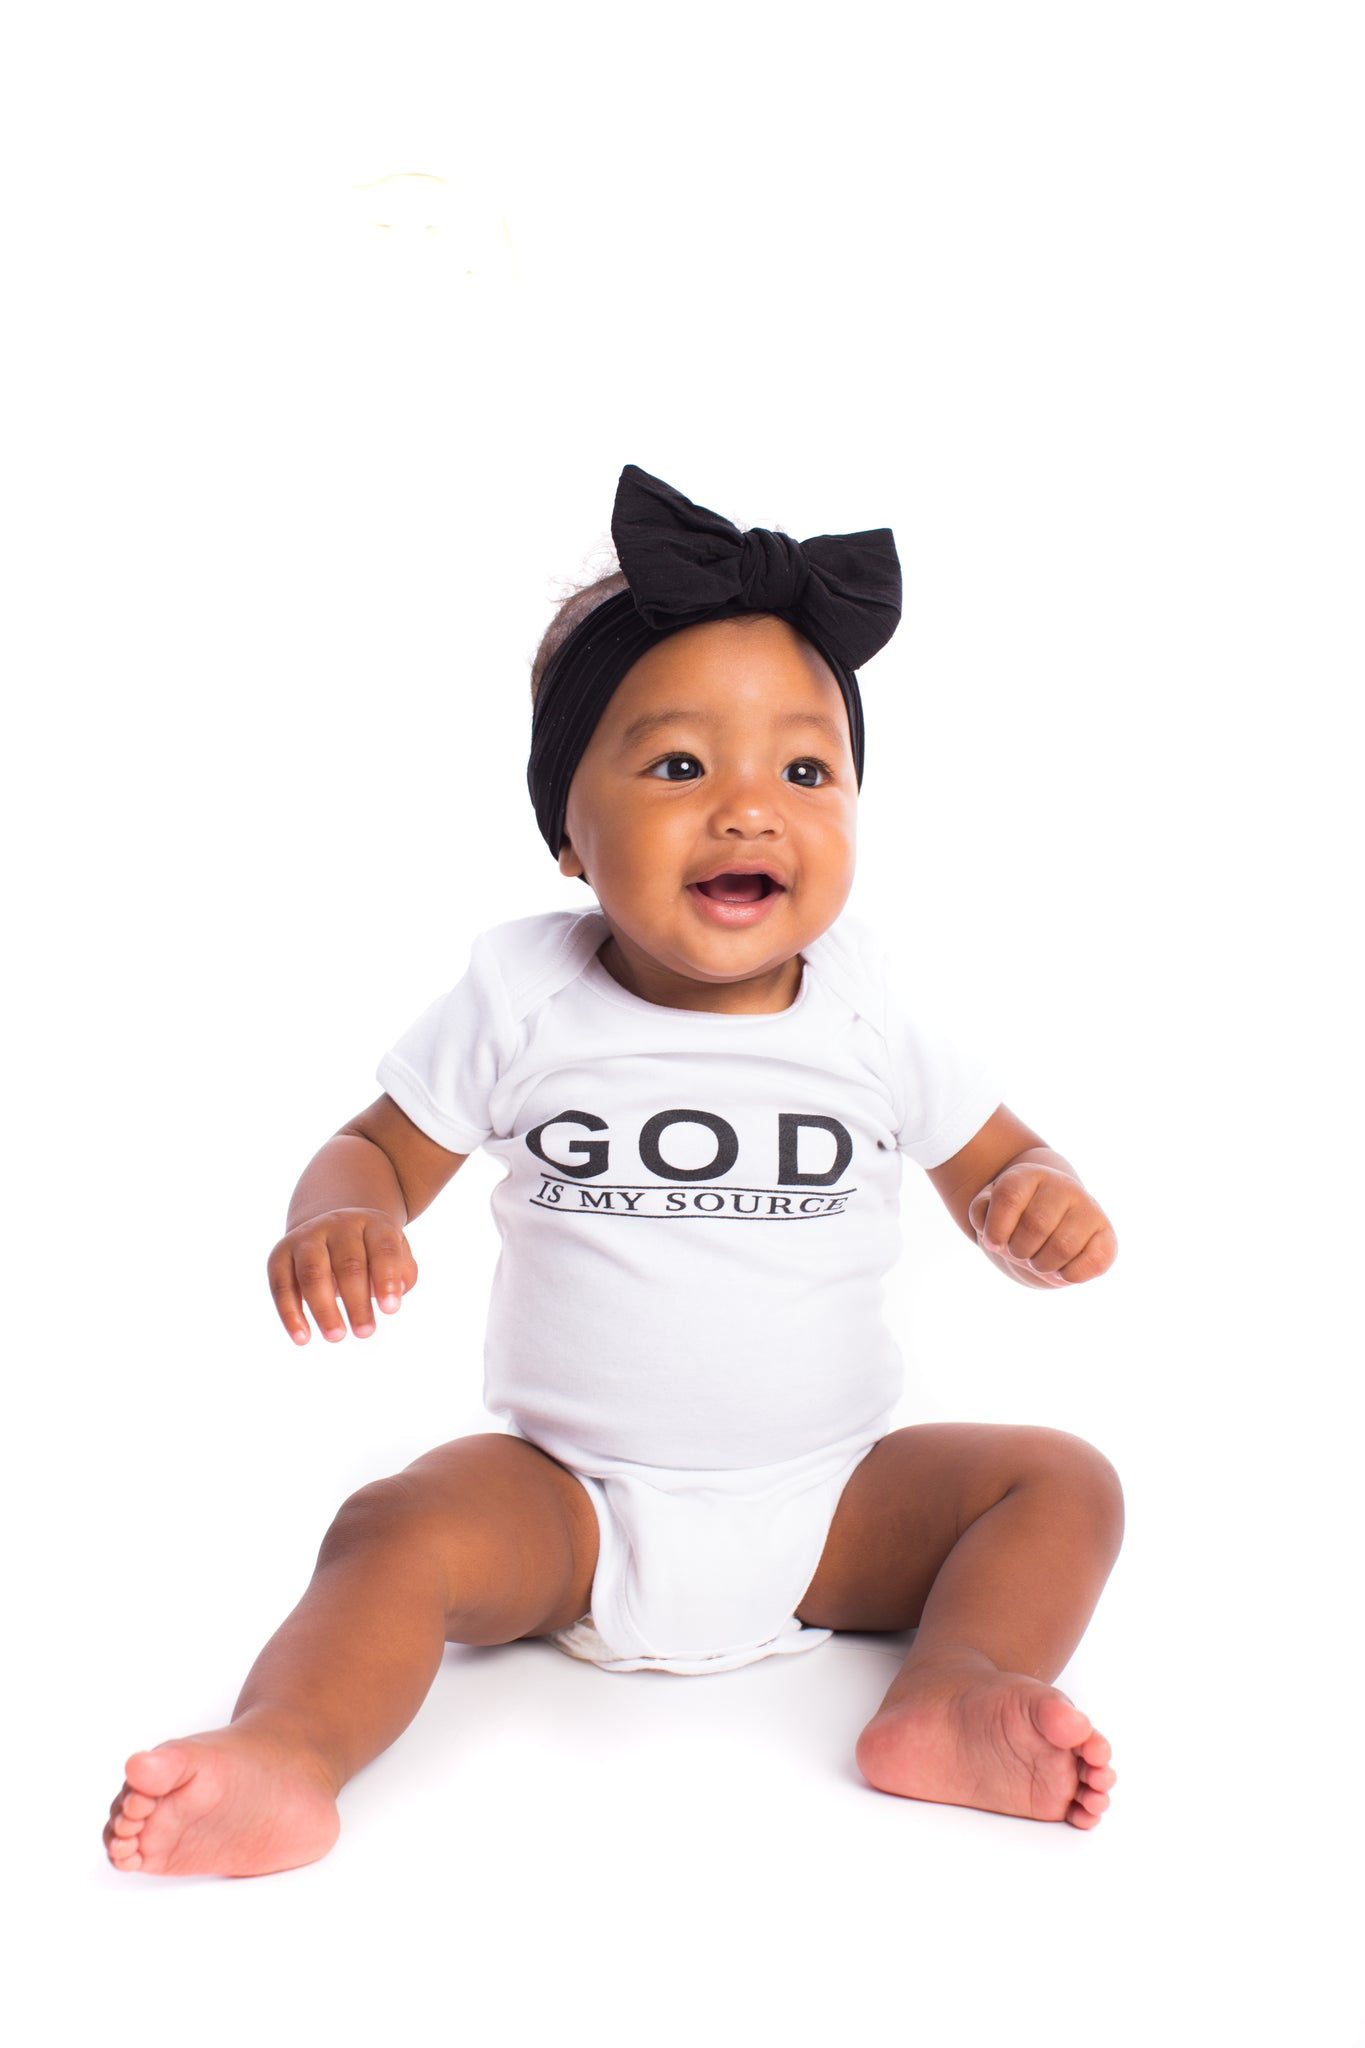 "God Is My Source ""Line Logo"" Infant Onesies T-Shirt Black/White - Children God Is My Source"